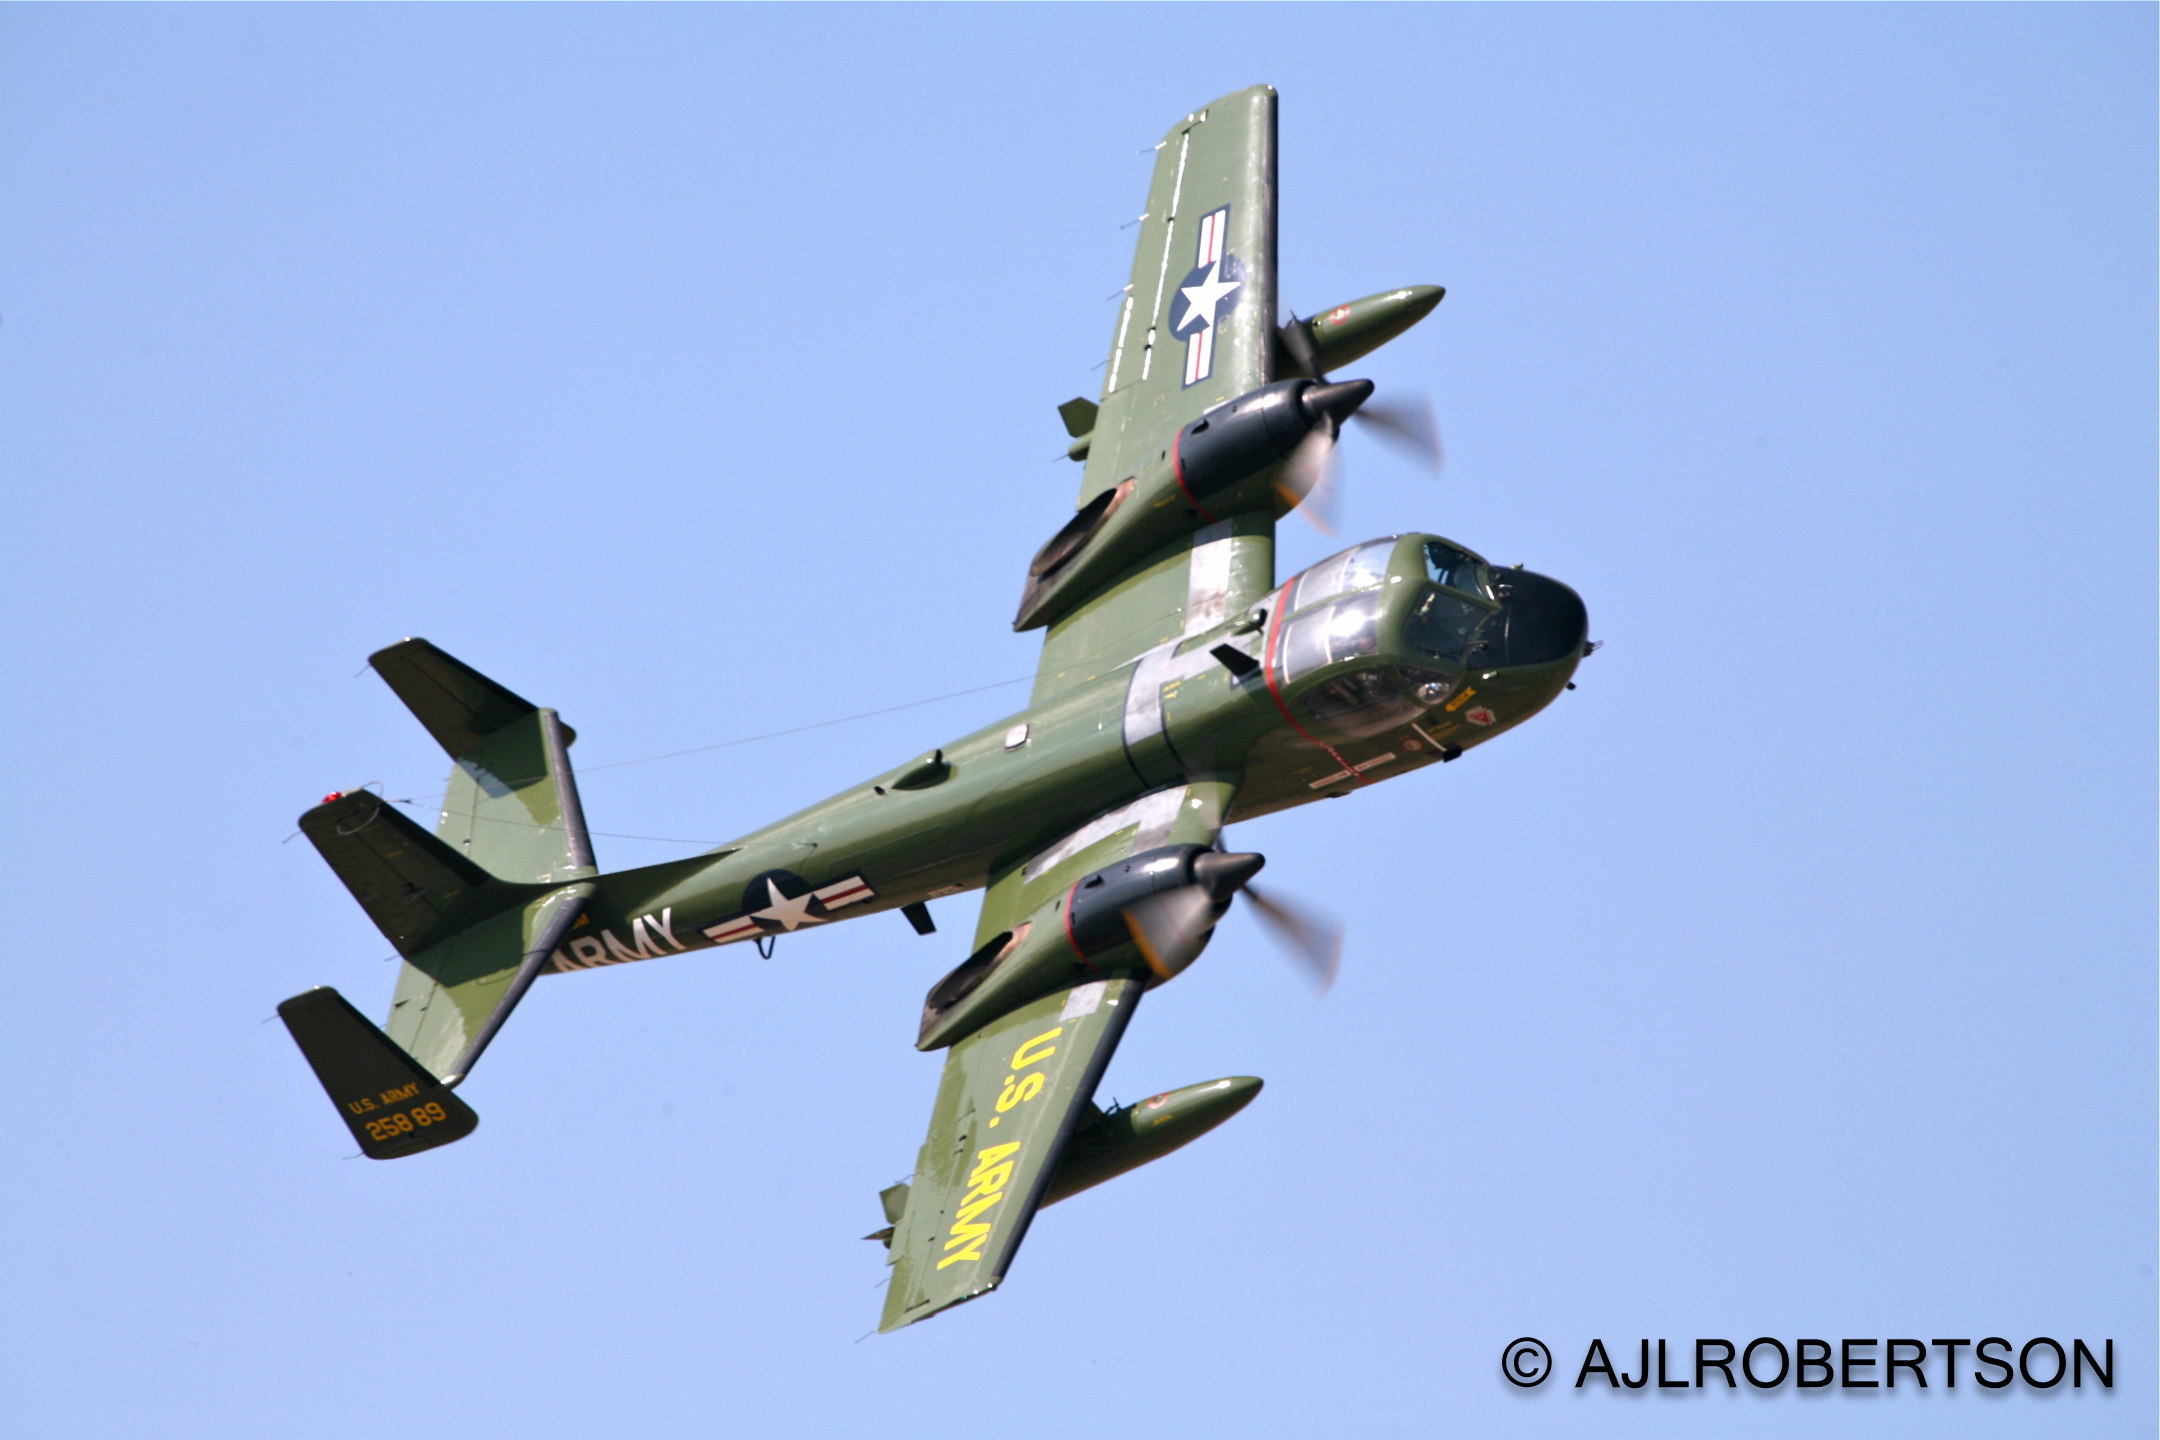 helicopters of the vietnam war with Grumman Ov 1d Mohawk on 87860 moreover Military Helicopters May Get Gunshot Location System together with Avhuey 1 in addition IhistoryEqAir5 furthermore 93549978.